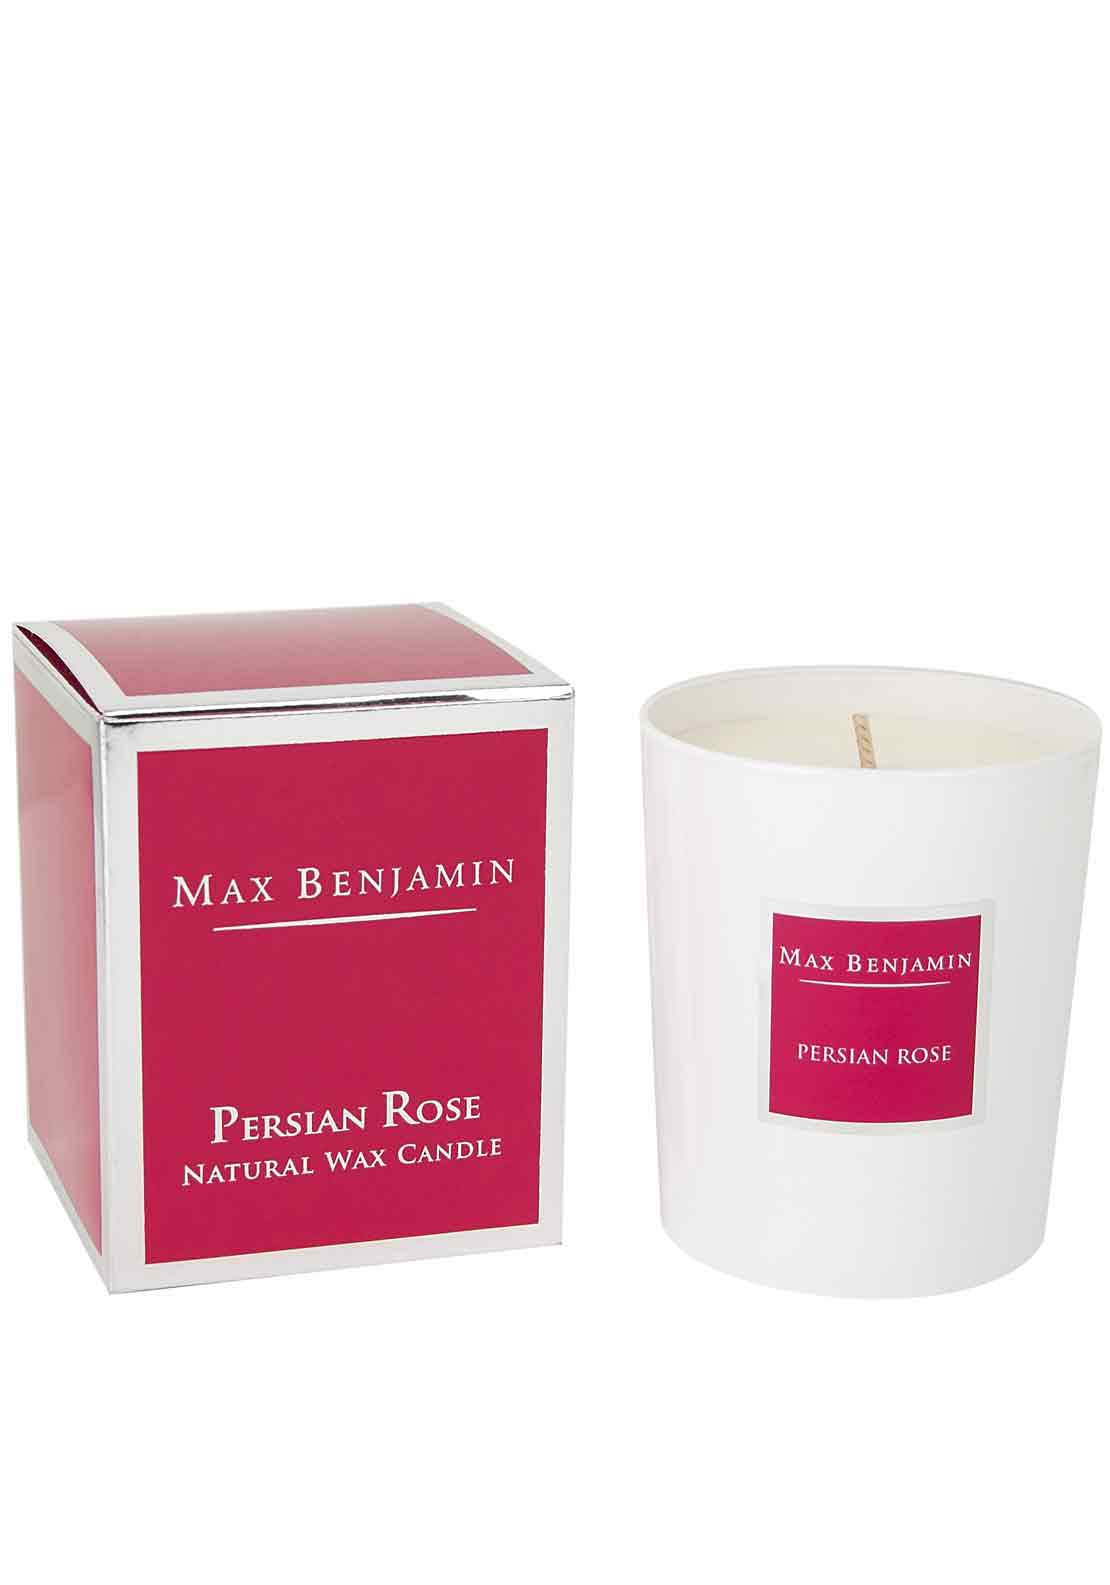 Max Benjamin Persian Rose Scented Candle